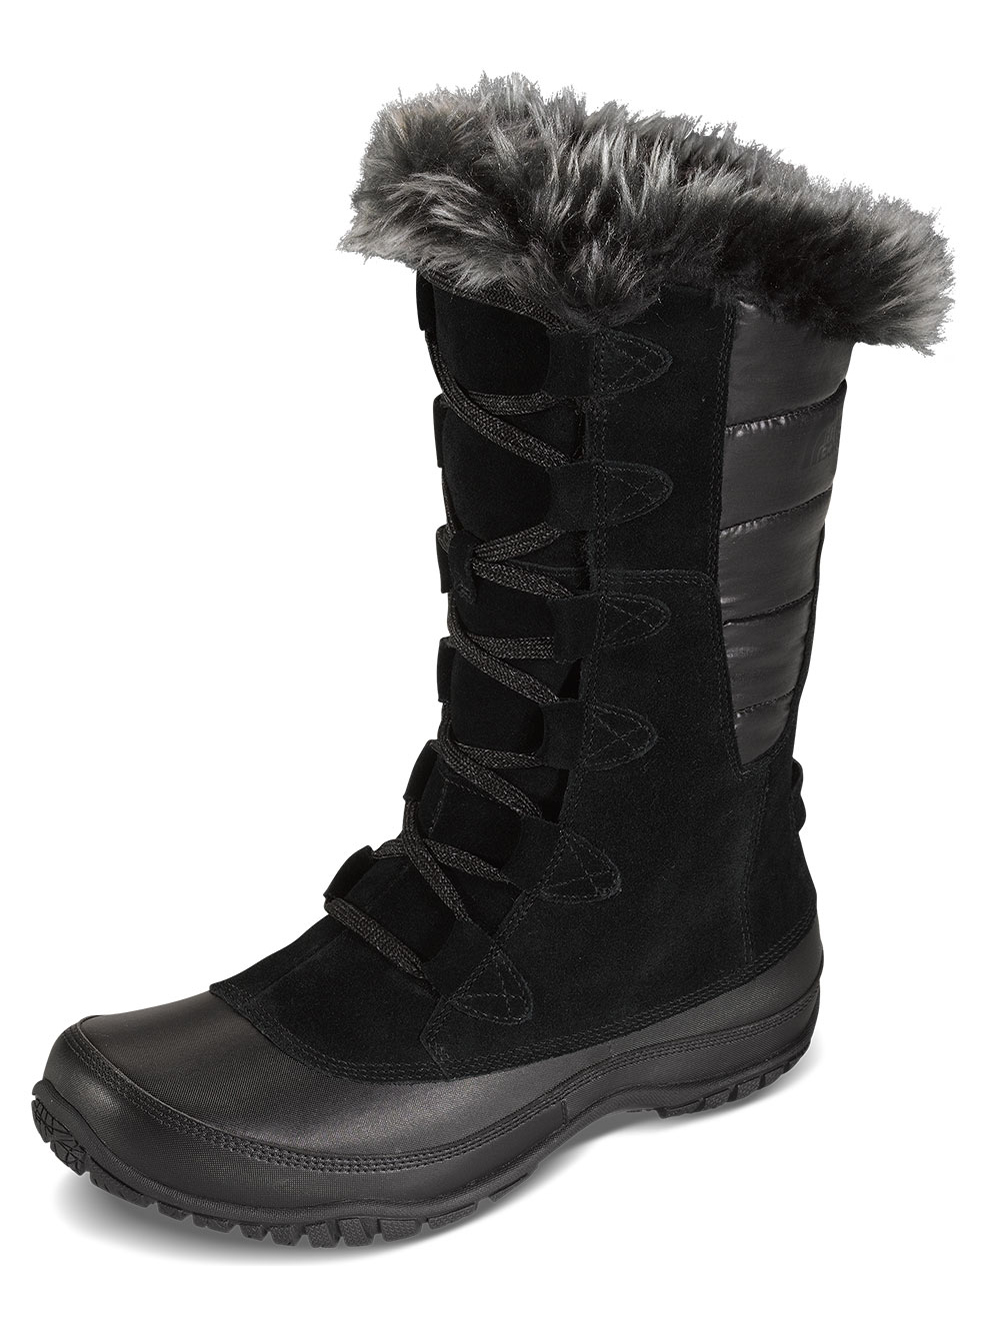 111bbe362 Women's Nupste Purna Boots by The North Face in iron gate/quail gray ...